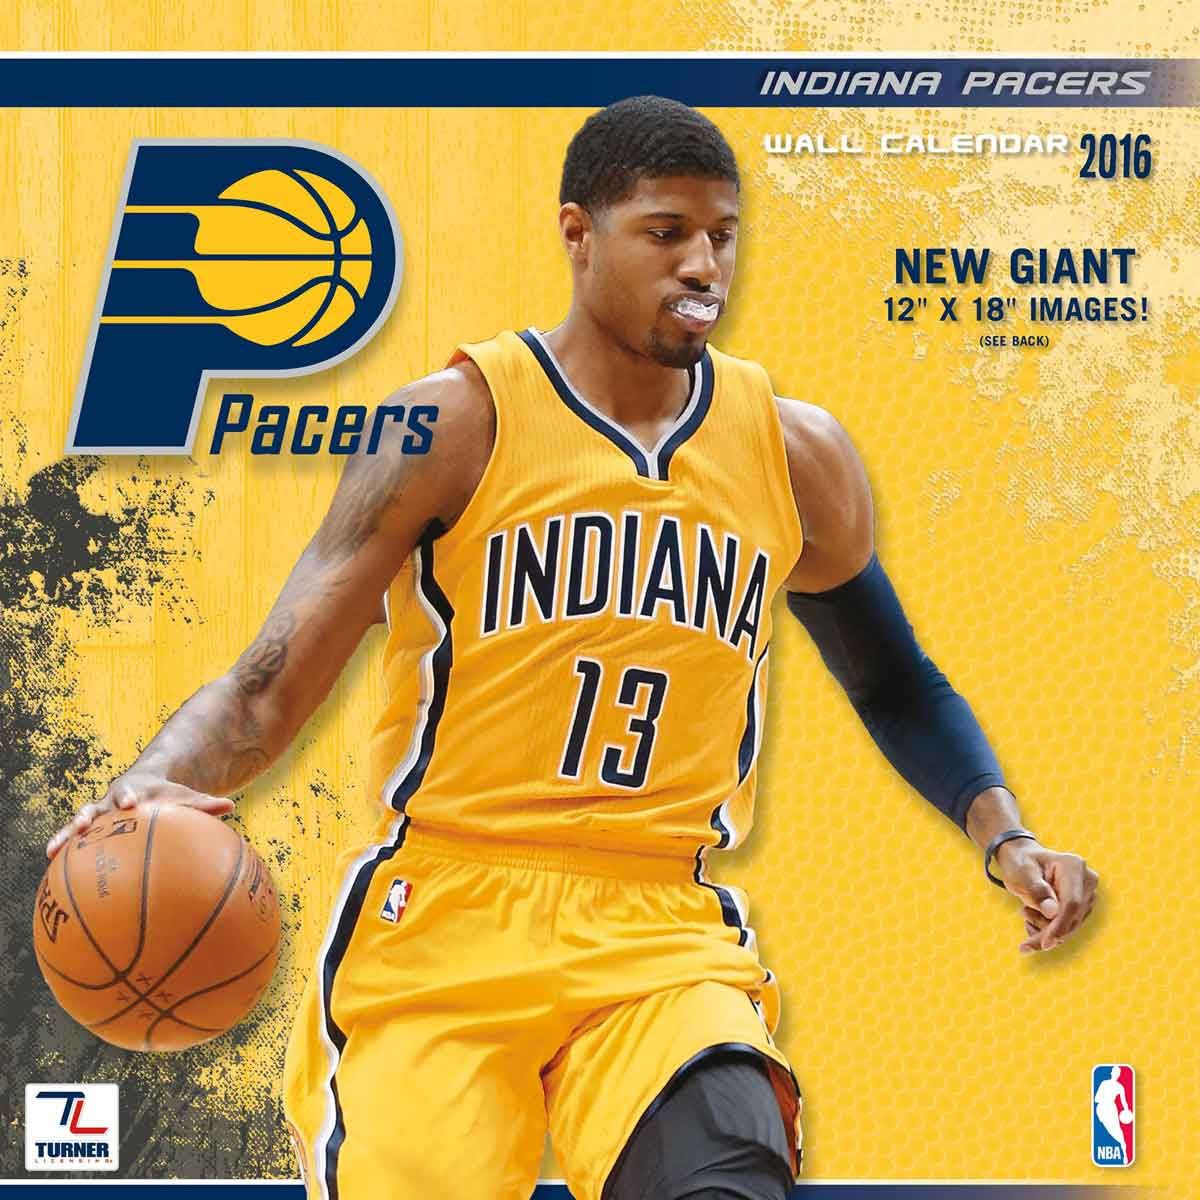 Indiana Pacers NBA Calendar 2016